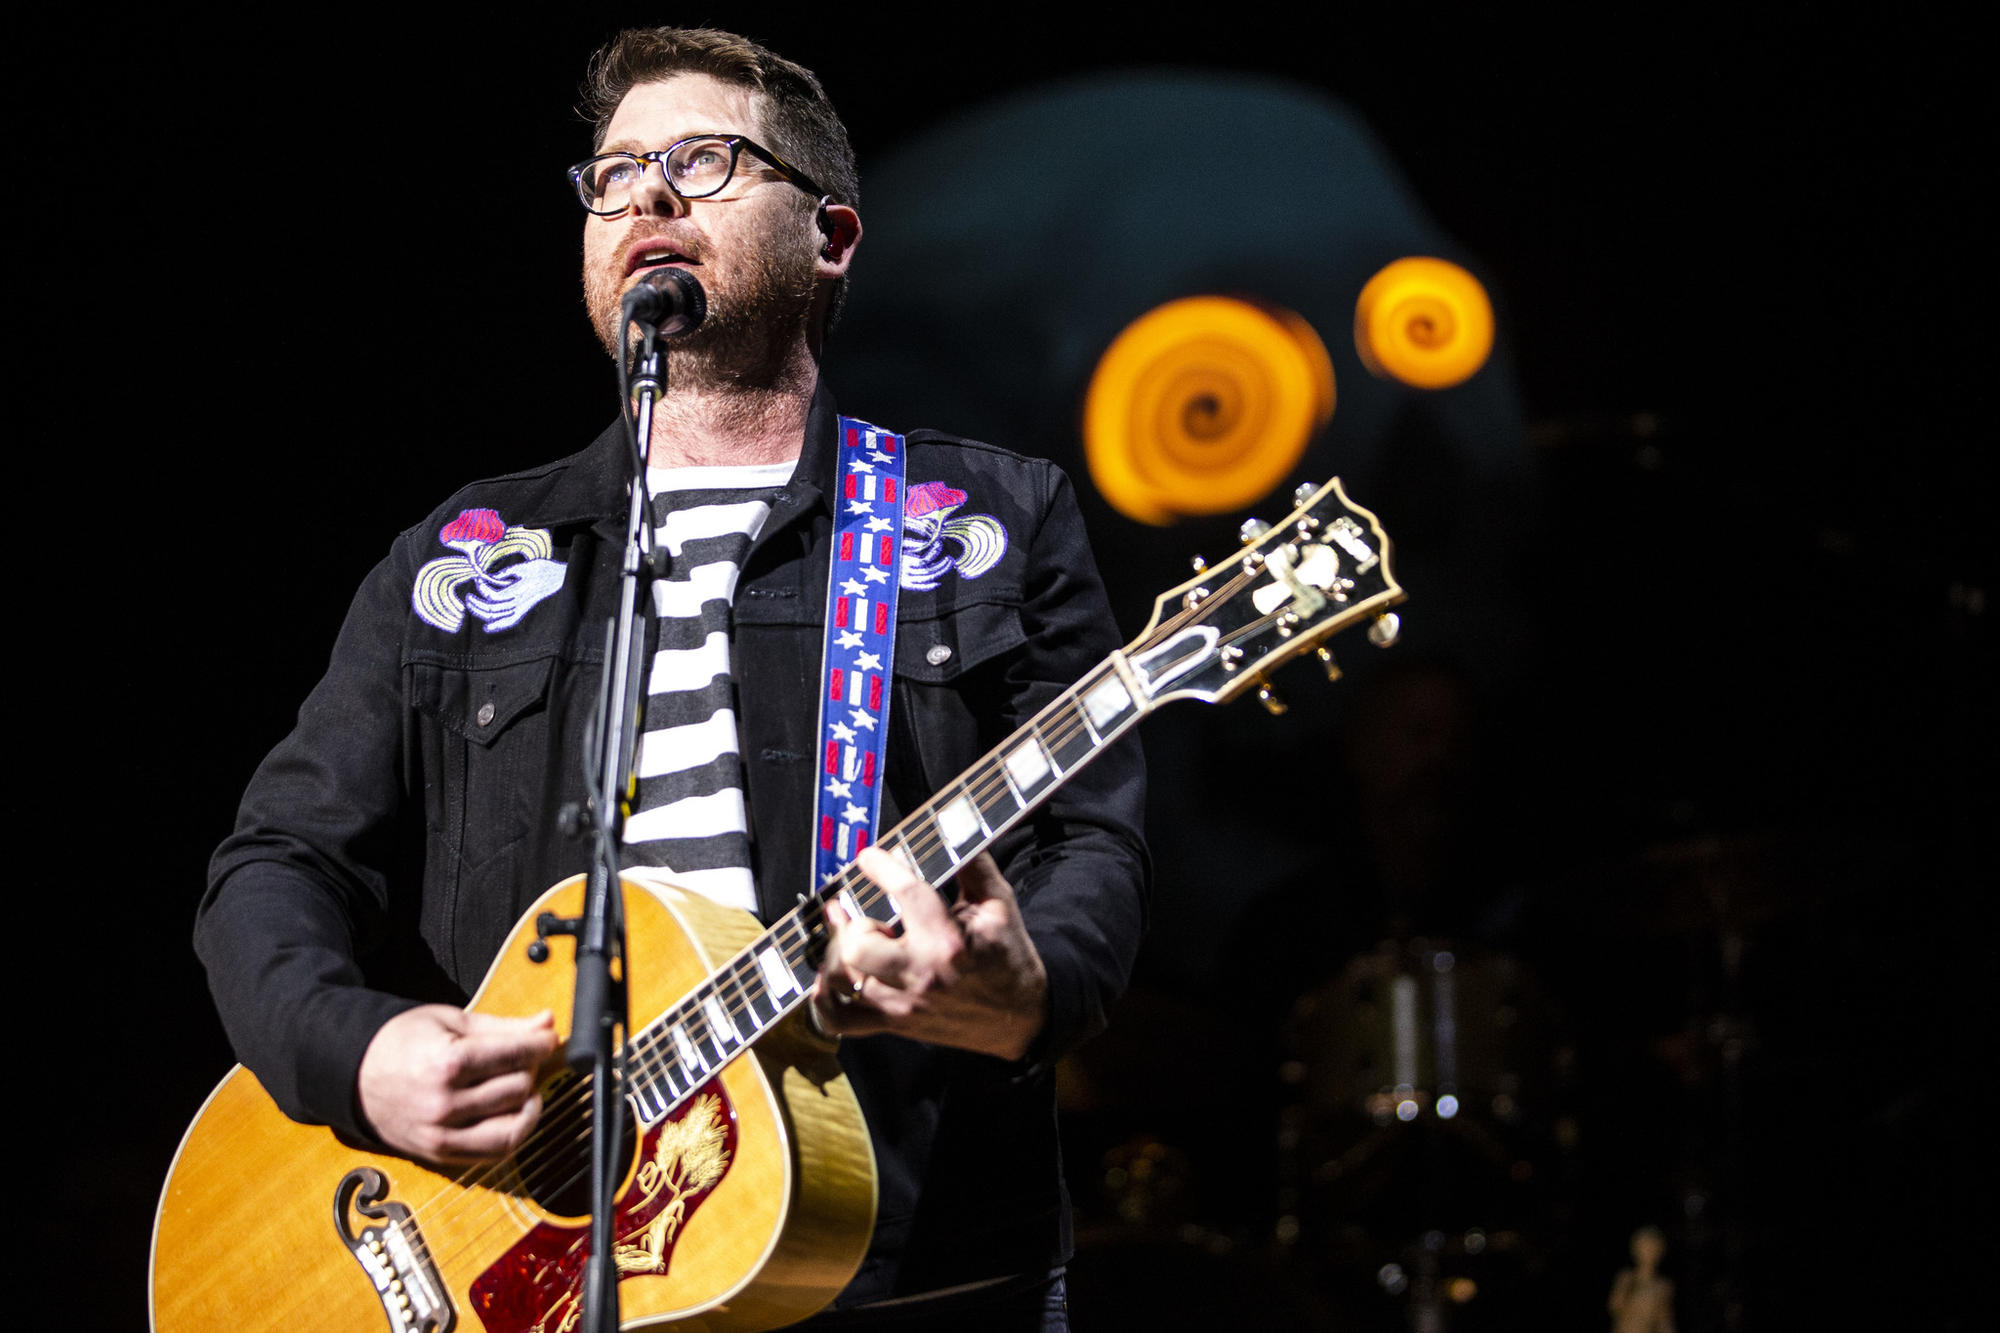 Colin Meloy of the Decemberists during a performance at the Red Rocks Amphitheater.